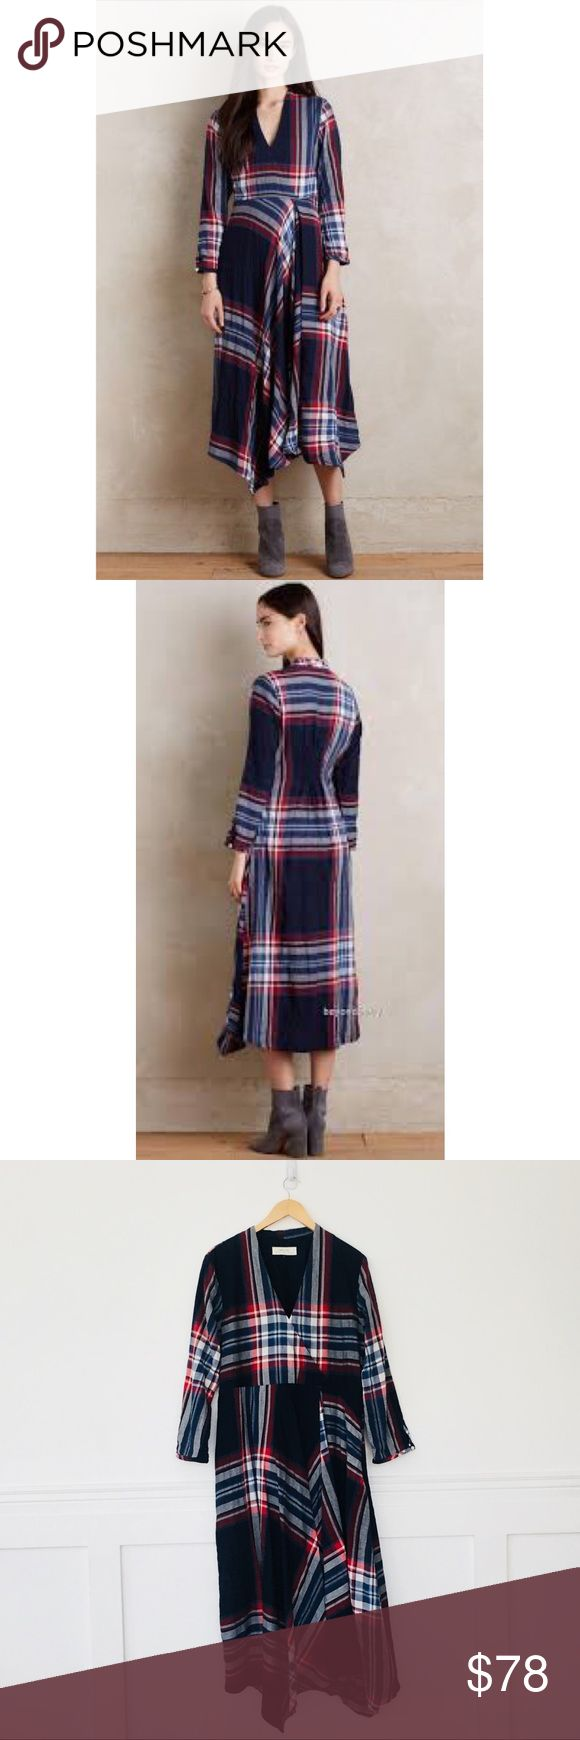 "Anthropologie Isabella Sinclair dress Tartan Surplice Dress by Isabella Sinclair.   Long sleeves, empire silhouette, irregular skirt.  Side zip.  Cotton and elastane.  Size XL. Bust 20.5"", waist 18.5"", length 49"".  In excellent condition with no signs of wear. Anthropologie Dresses"